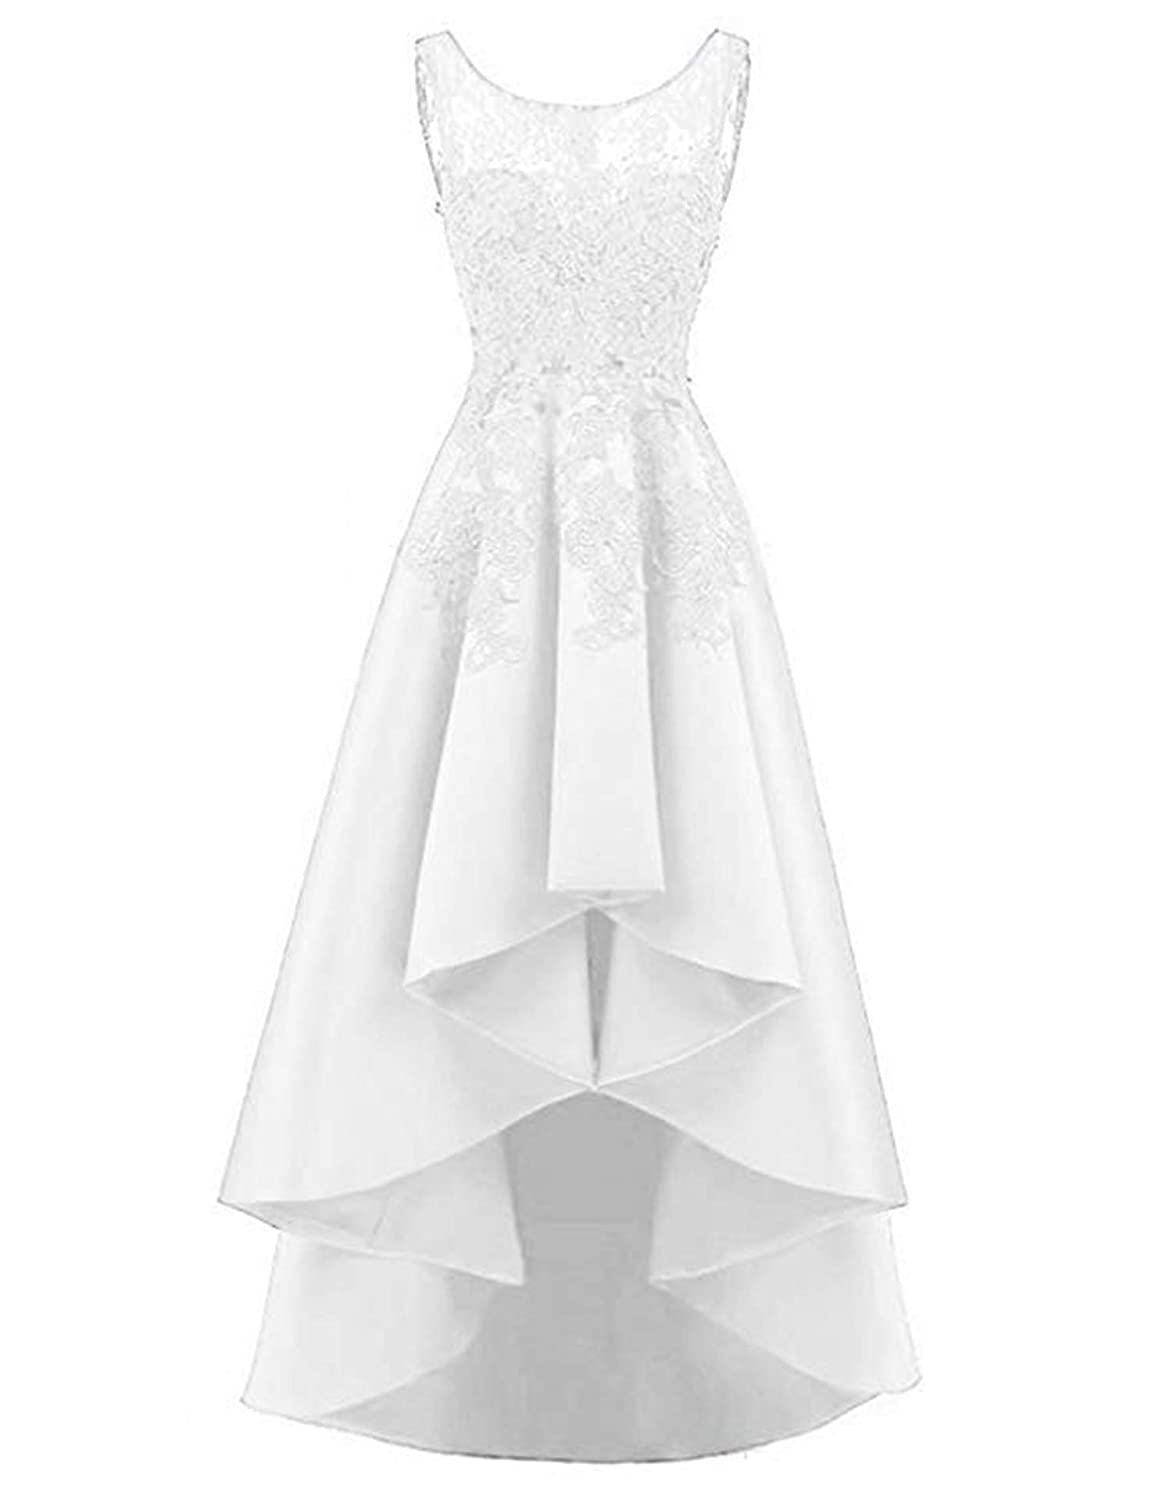 White QiJunGe Women's High Low Prom Dress Lace Satin A Line Evening Formal Gowns